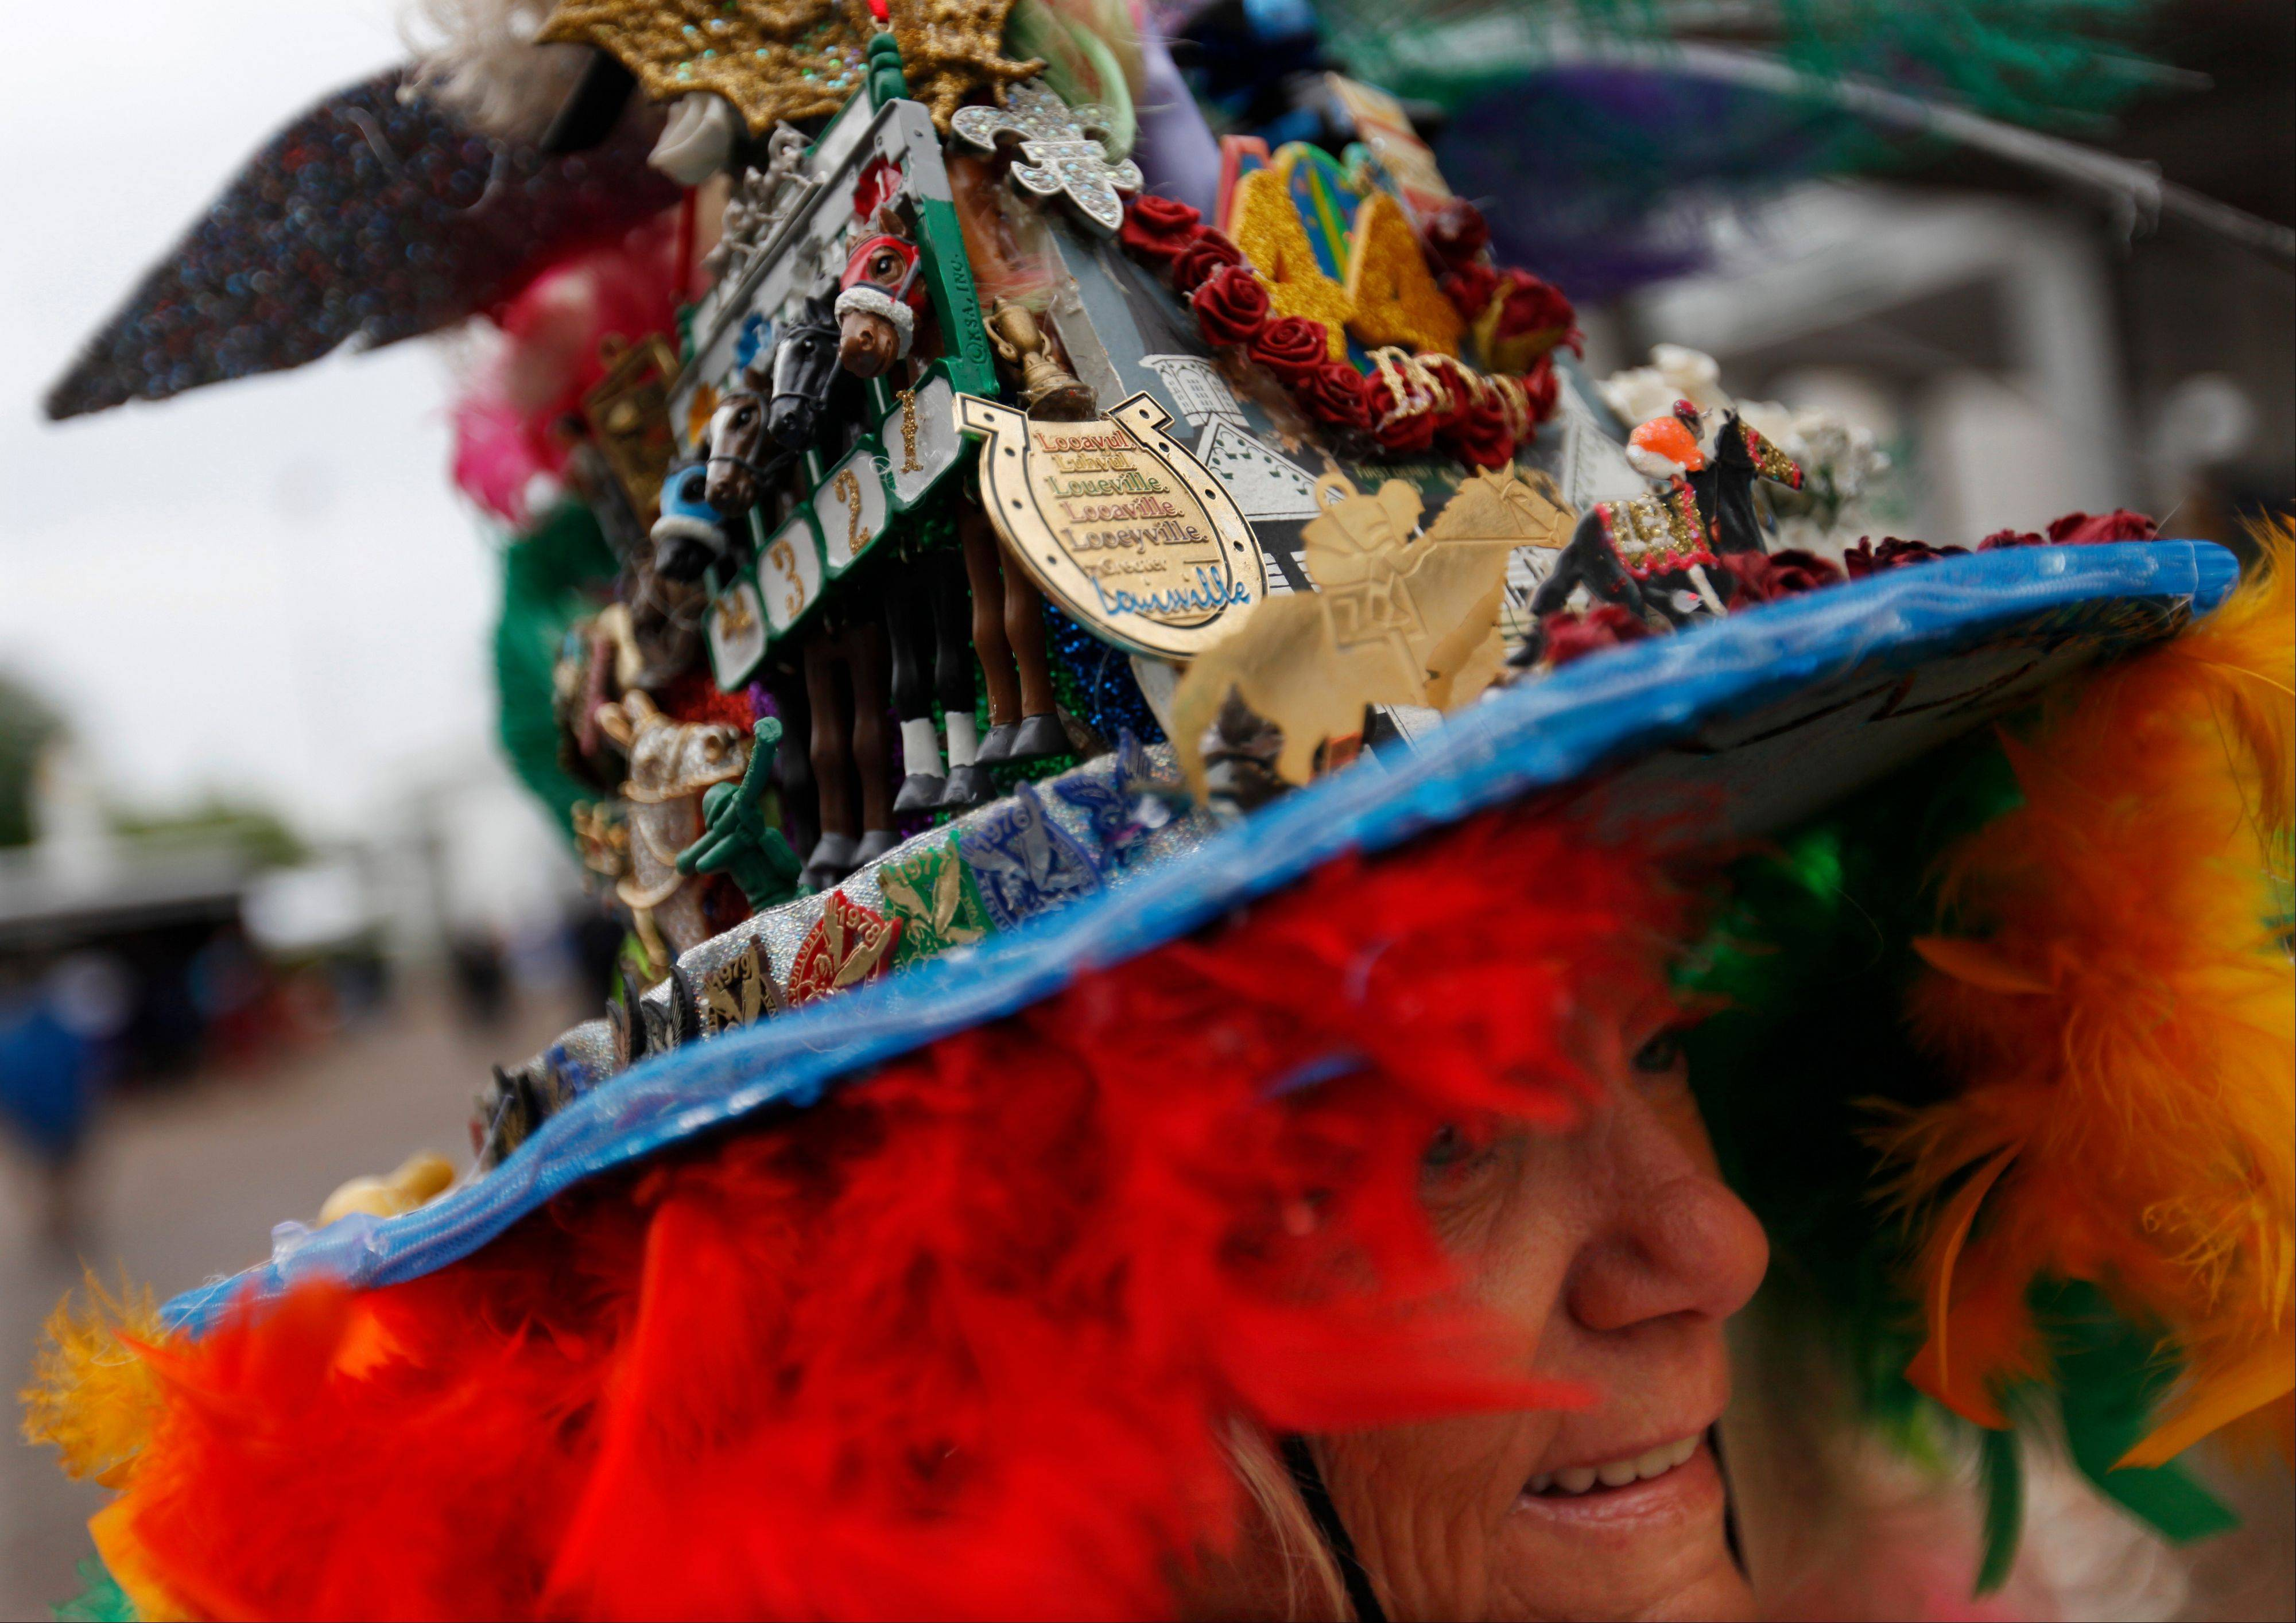 Jinny Keen, from Louisville, Ky., wears a handmade hat, celebrating her 44th Derby appearance before the running of the 139th Kentucky Derby.